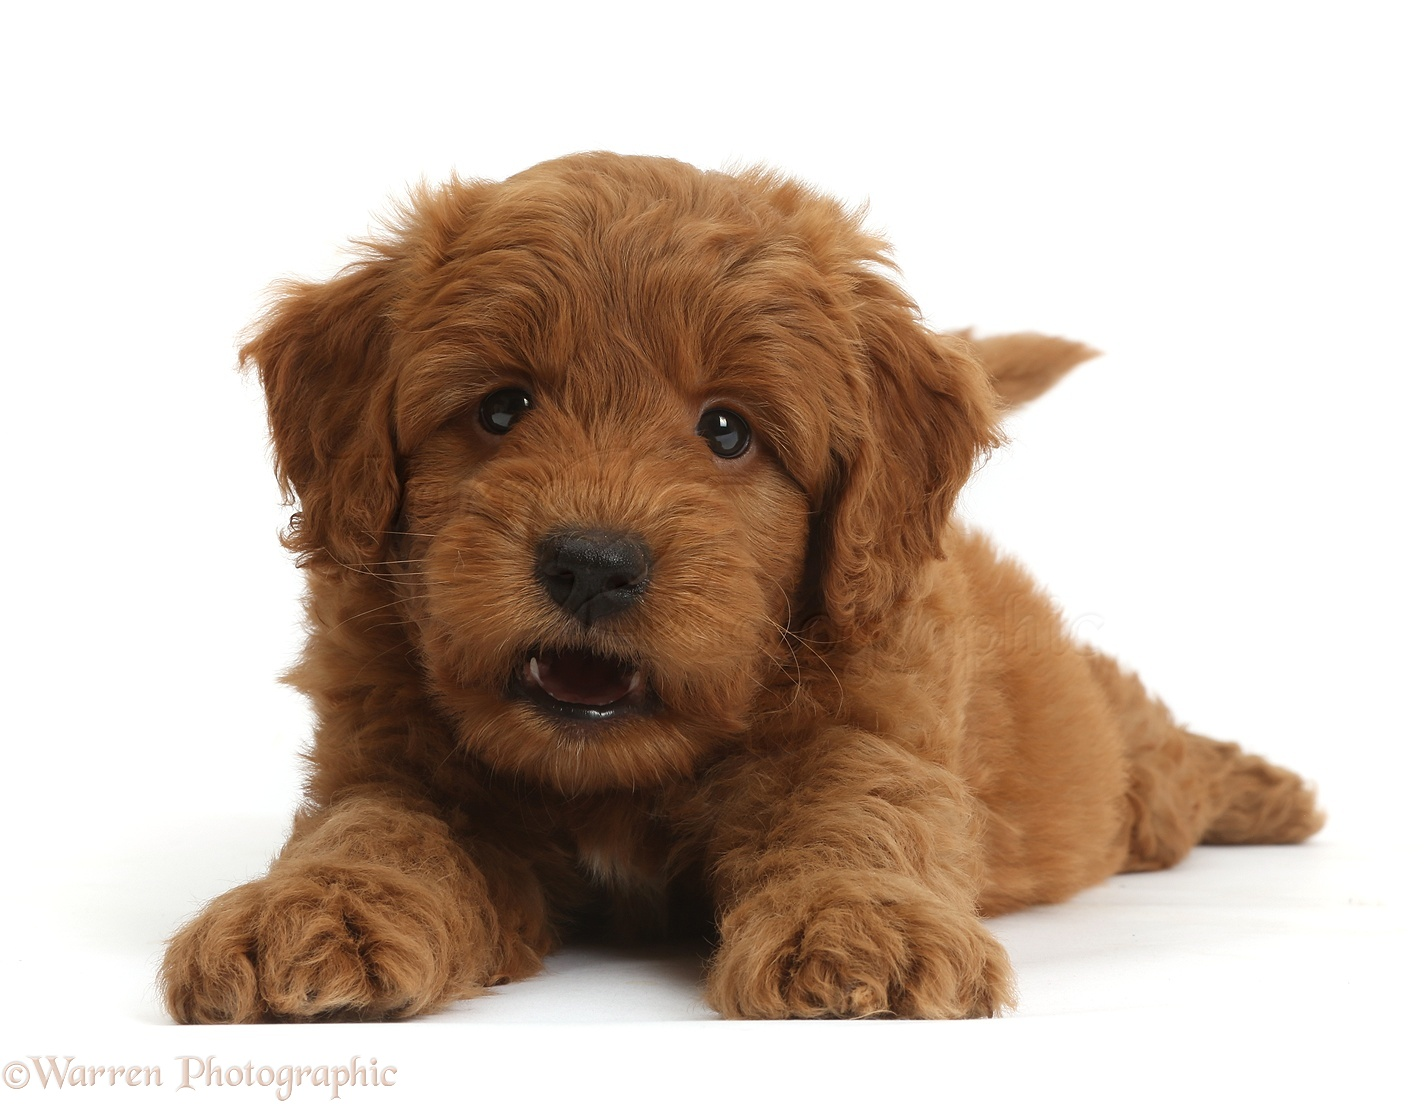 Wp36752 cute playful red f1b goldendoodle puppy